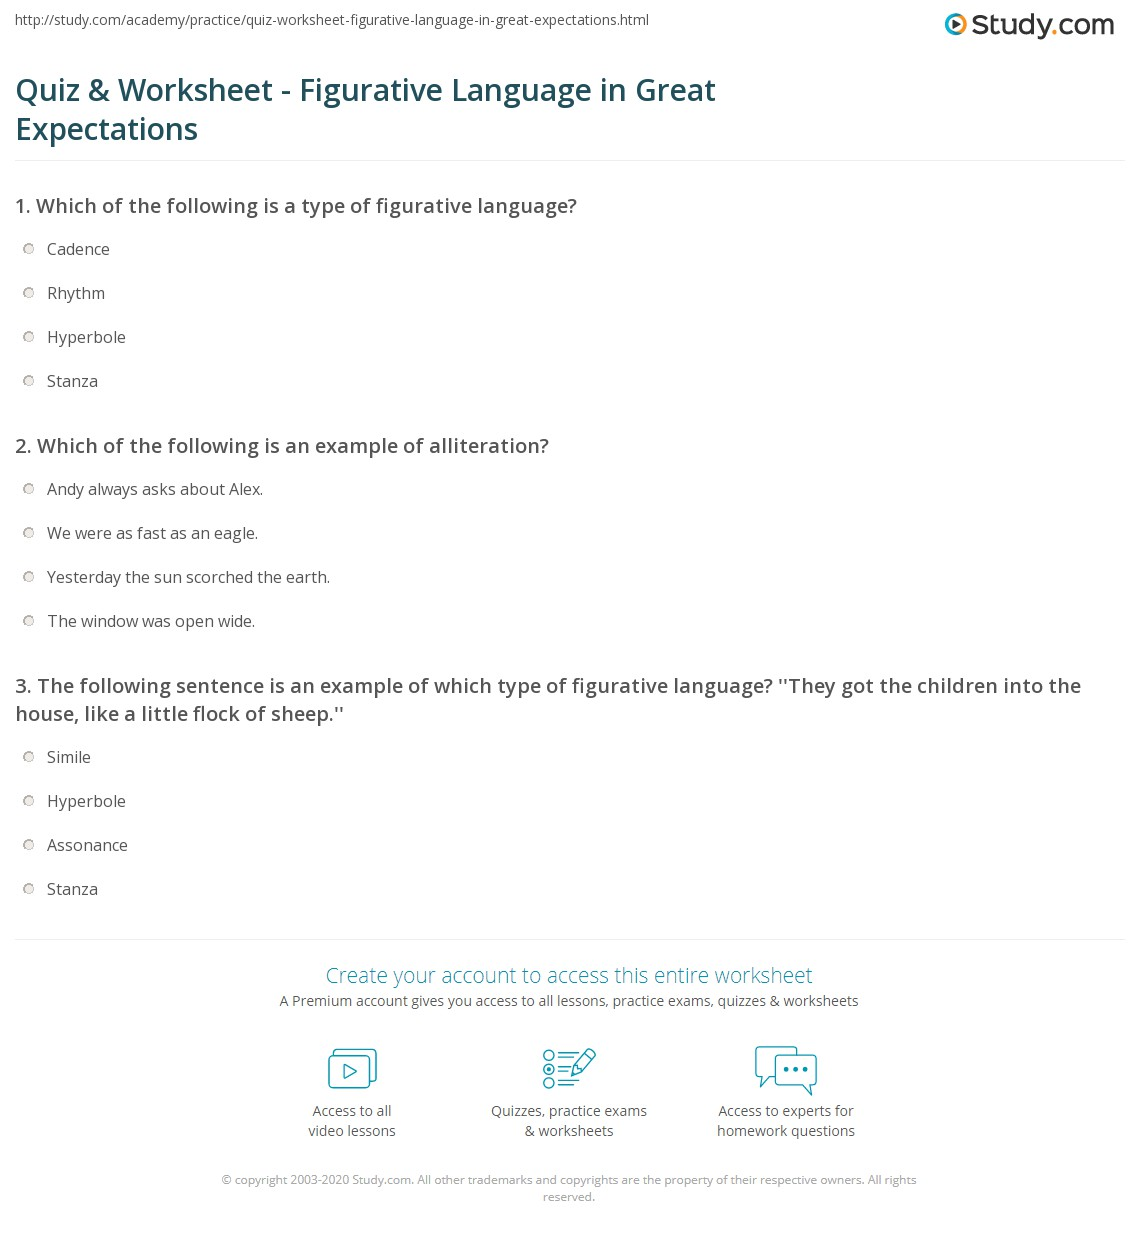 Quiz Worksheet Figurative Language In Great Expectations Study Com